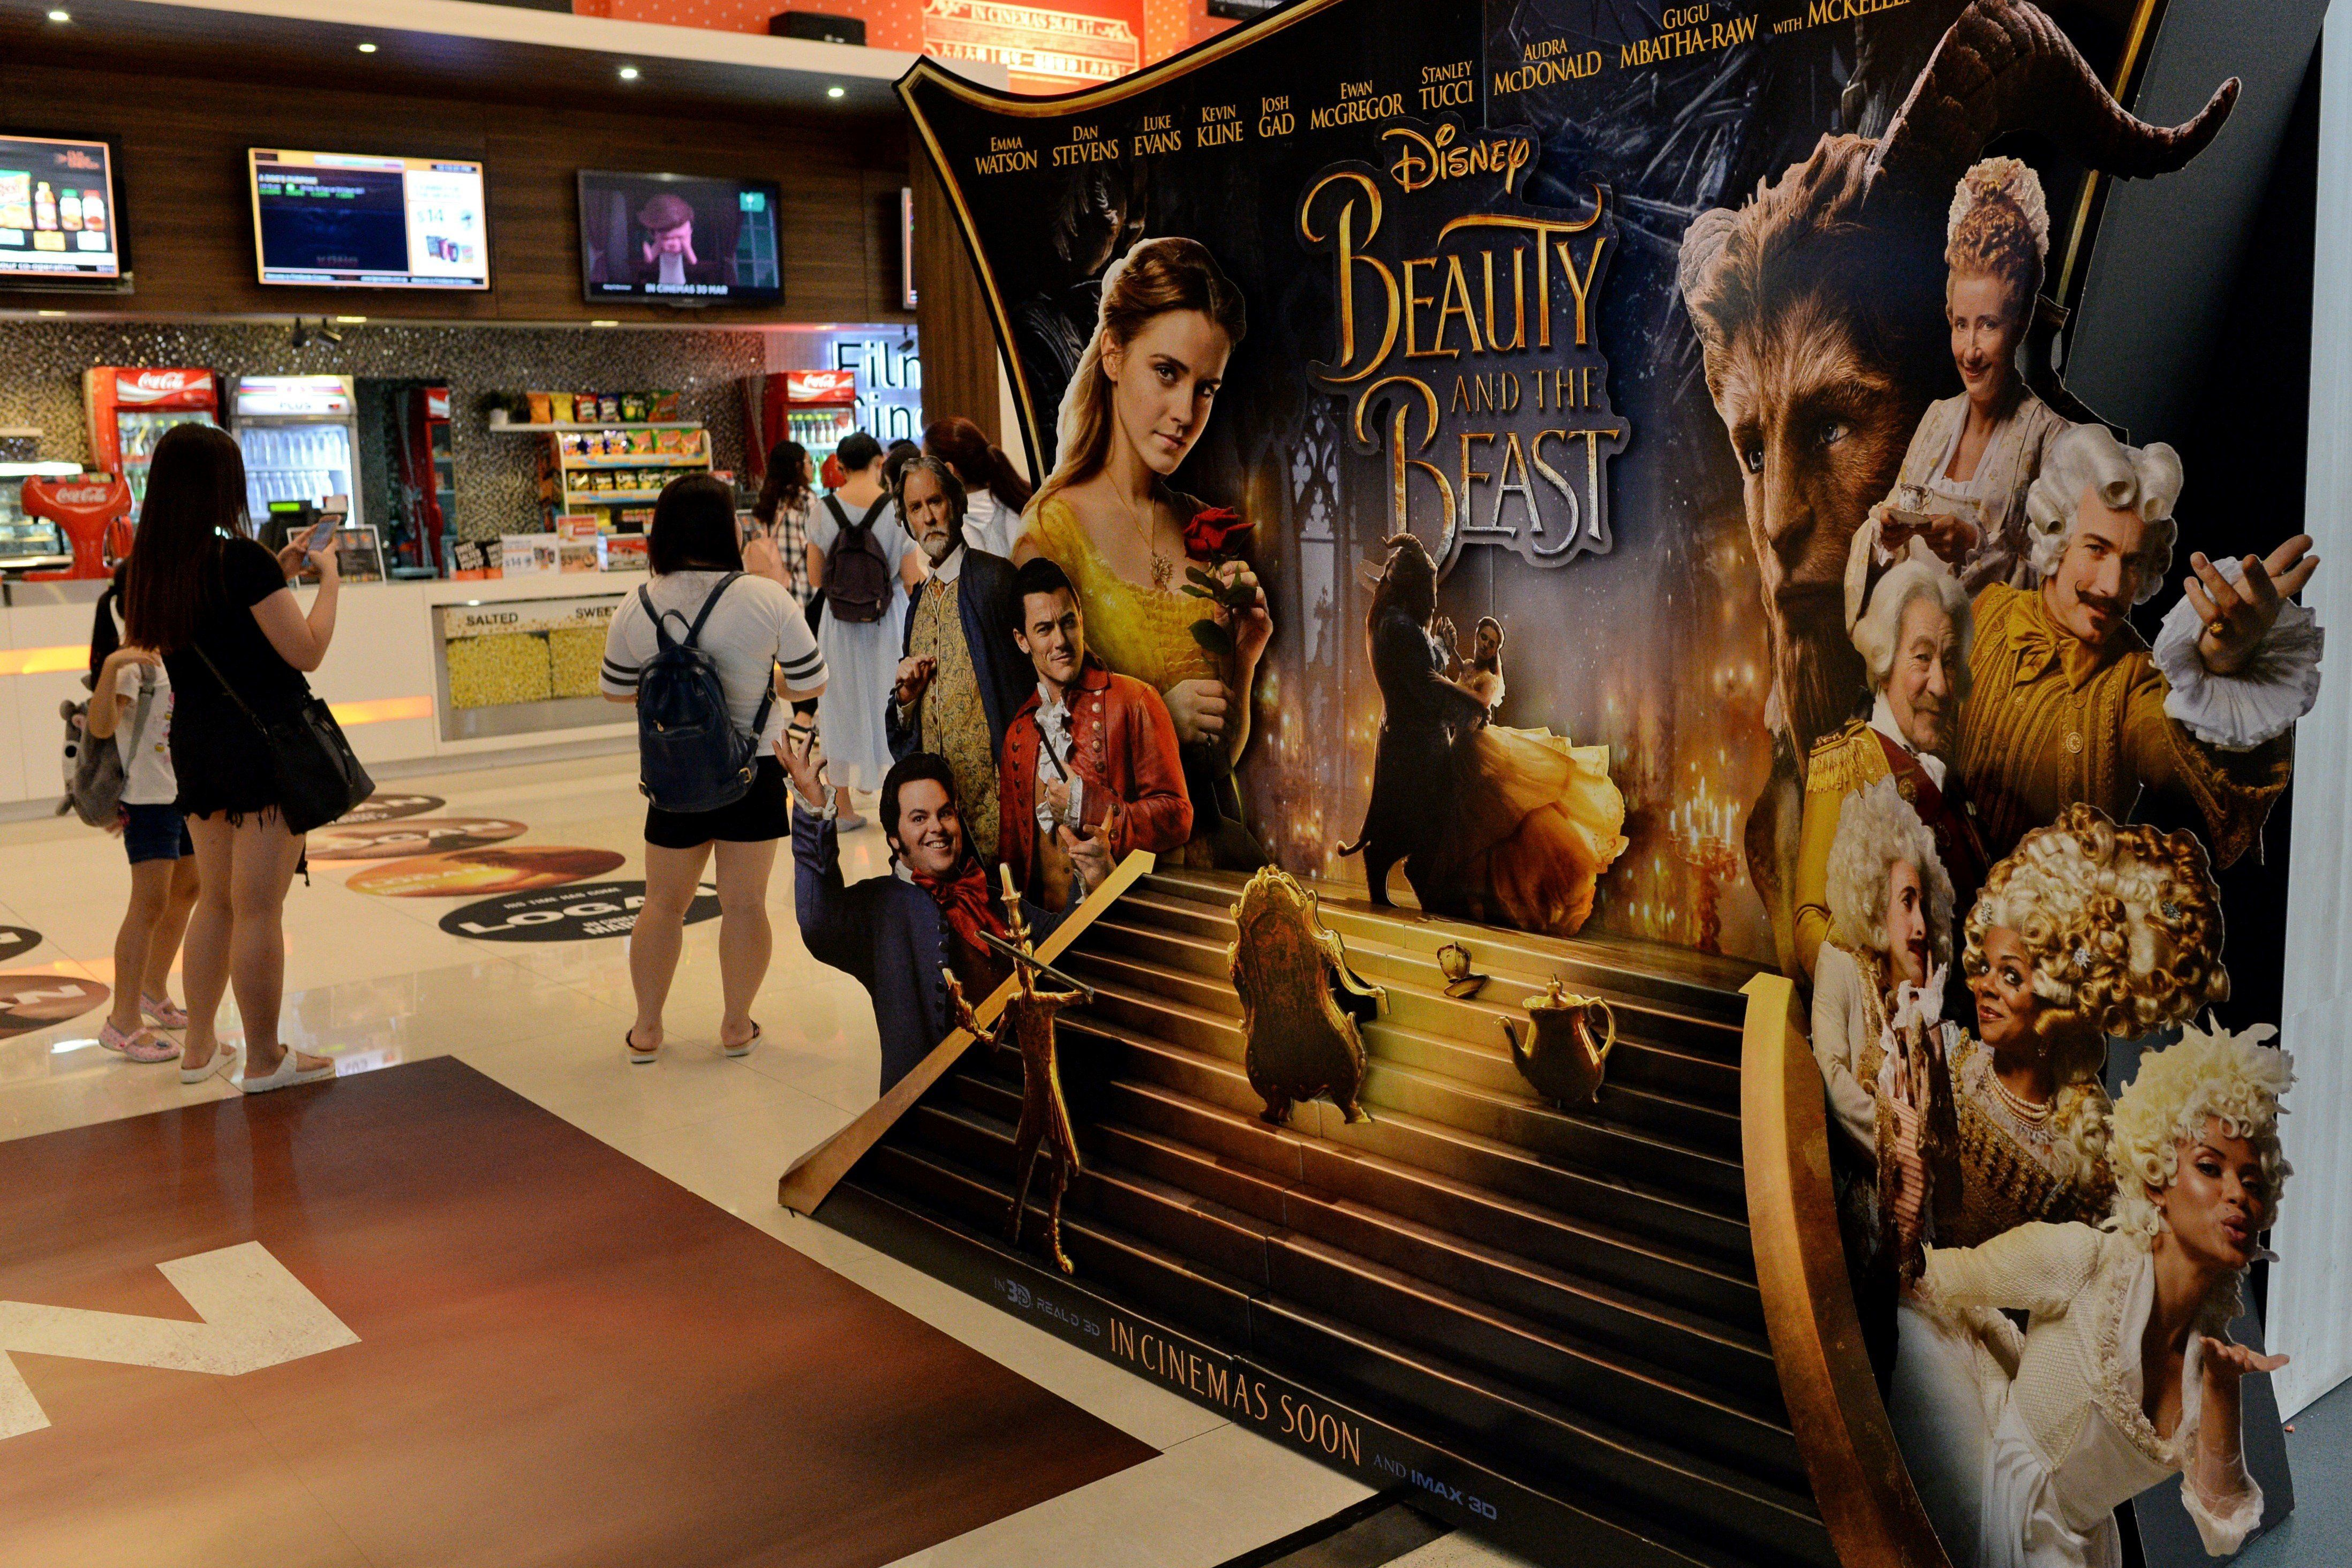 People stand near a promotional display for the film 'Beauty and the Beast' at a cinema in Singapore on March 14, 2017.  The film has come under fire from religious figures in Singapore, with Christian clergy attacking Disney for deviating from 'wholesome, mainstream values'. / AFP PHOTO / Roslan RAHMAN        (Photo credit should read ROSLAN RAHMAN/AFP/Getty Images)